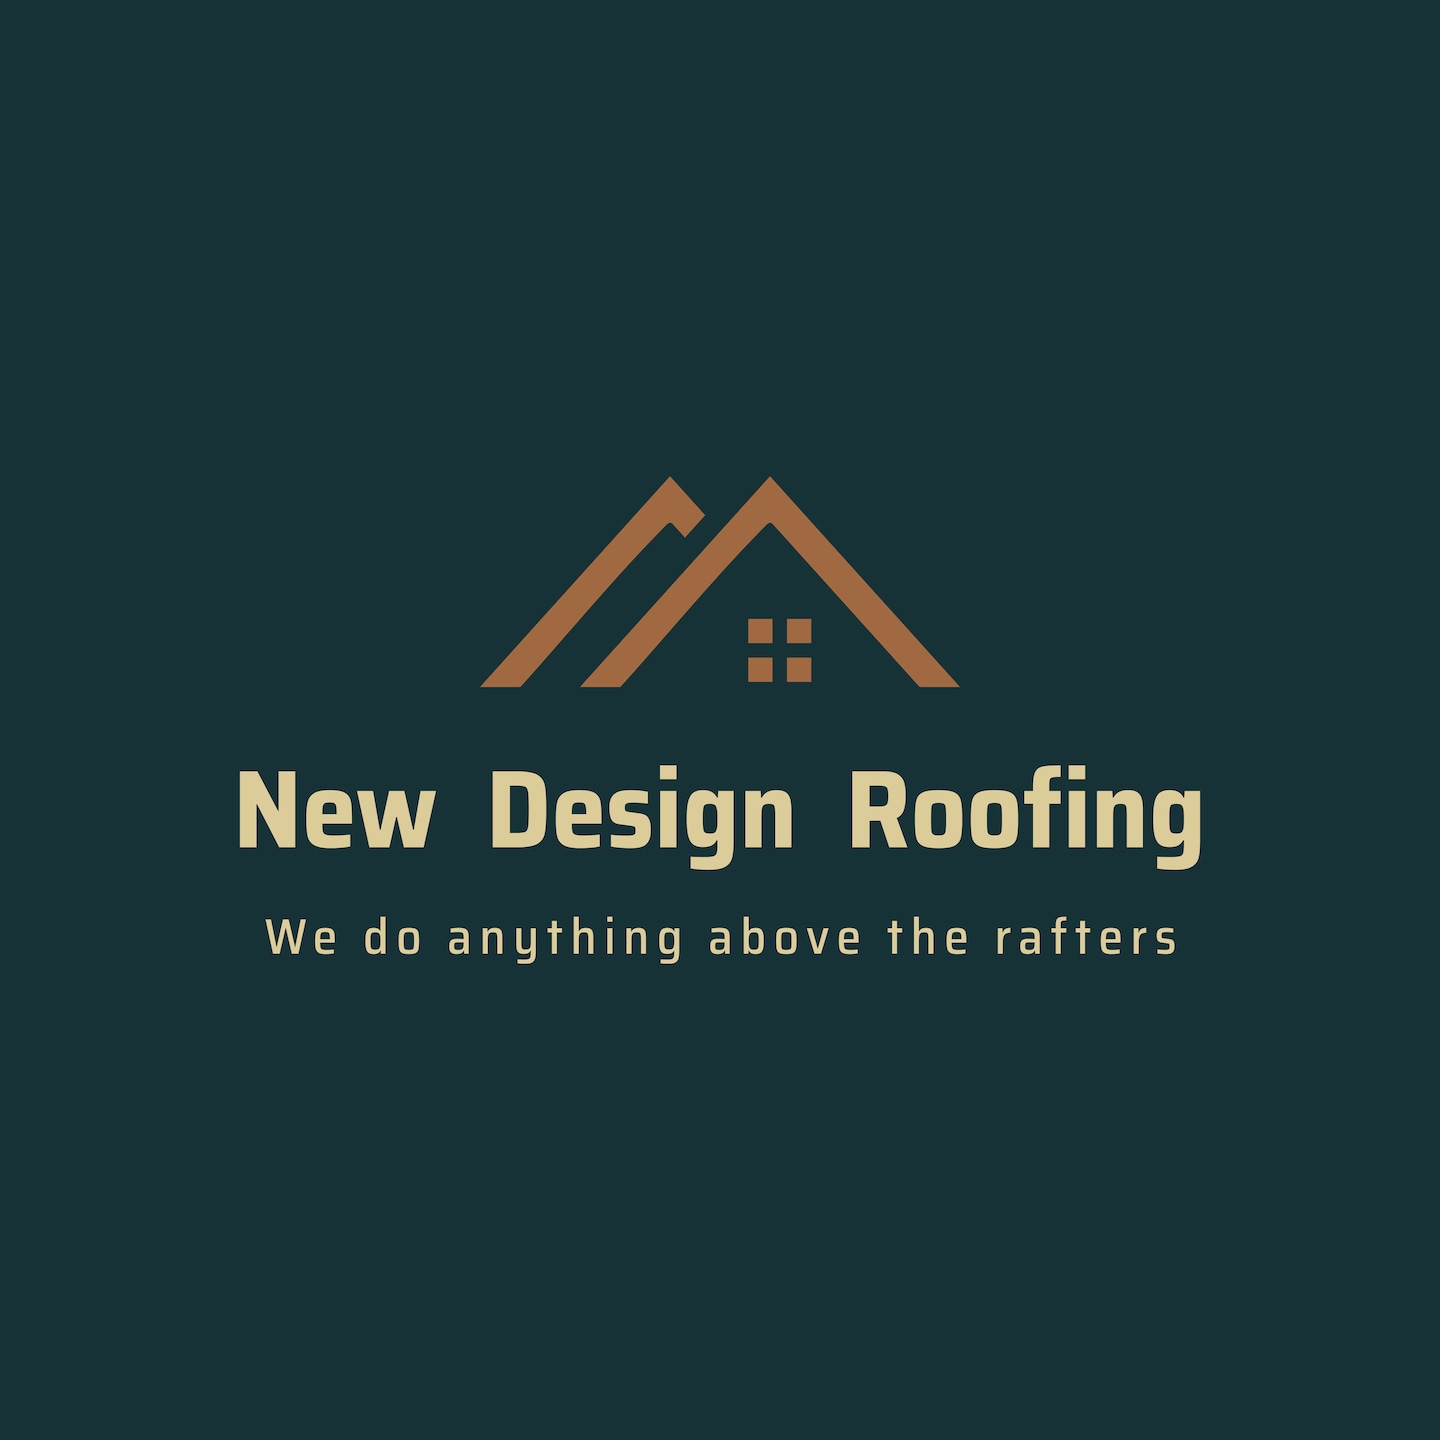 New Design Roofing